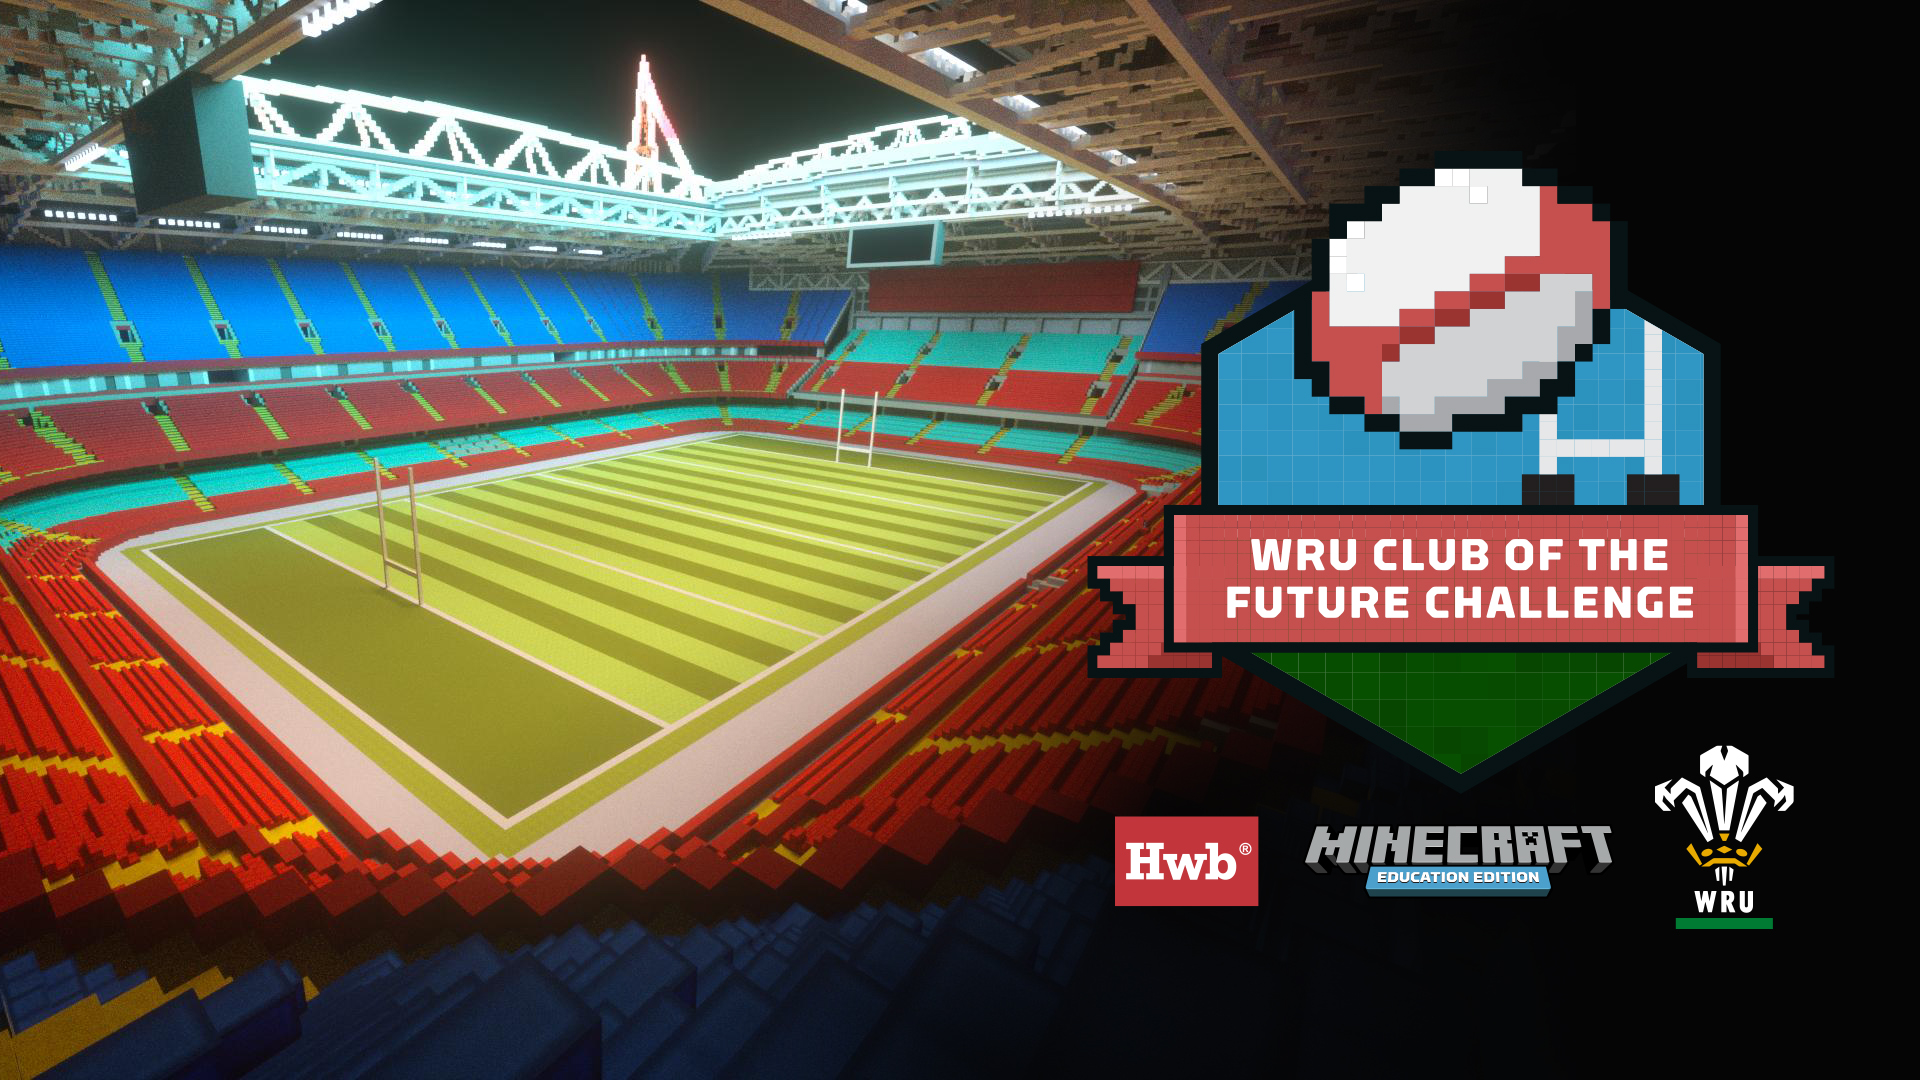 WRU Club of the Future Challenge - Minecraft Education Edition